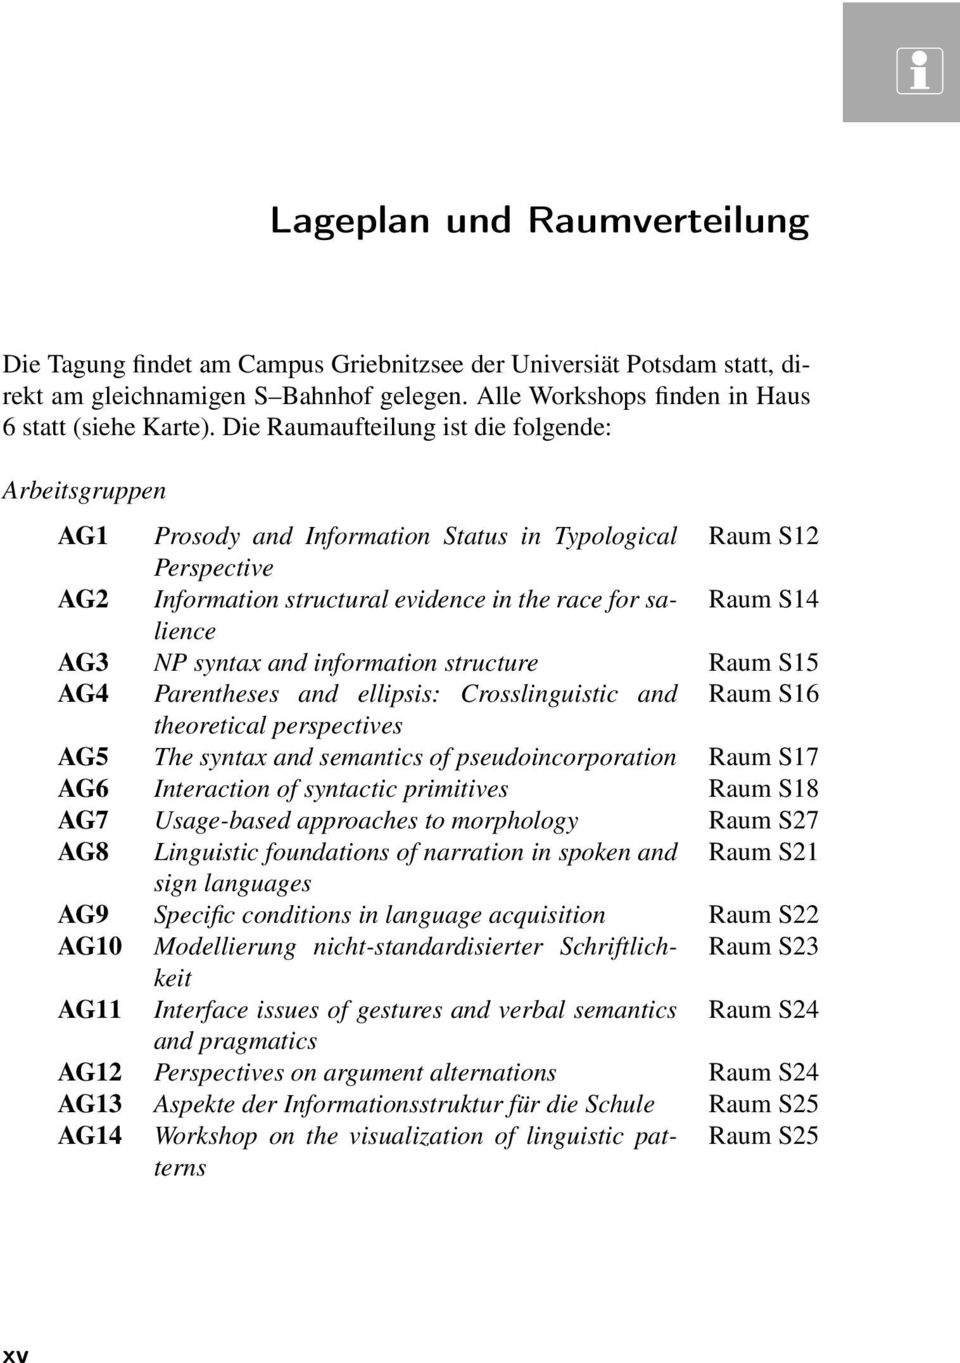 syntax and information structure Raum S15 AG4 Parentheses and ellipsis: Crosslinguistic and Raum S16 theoretical perspectives AG5 The syntax and semantics of pseudoincorporation Raum S17 AG6